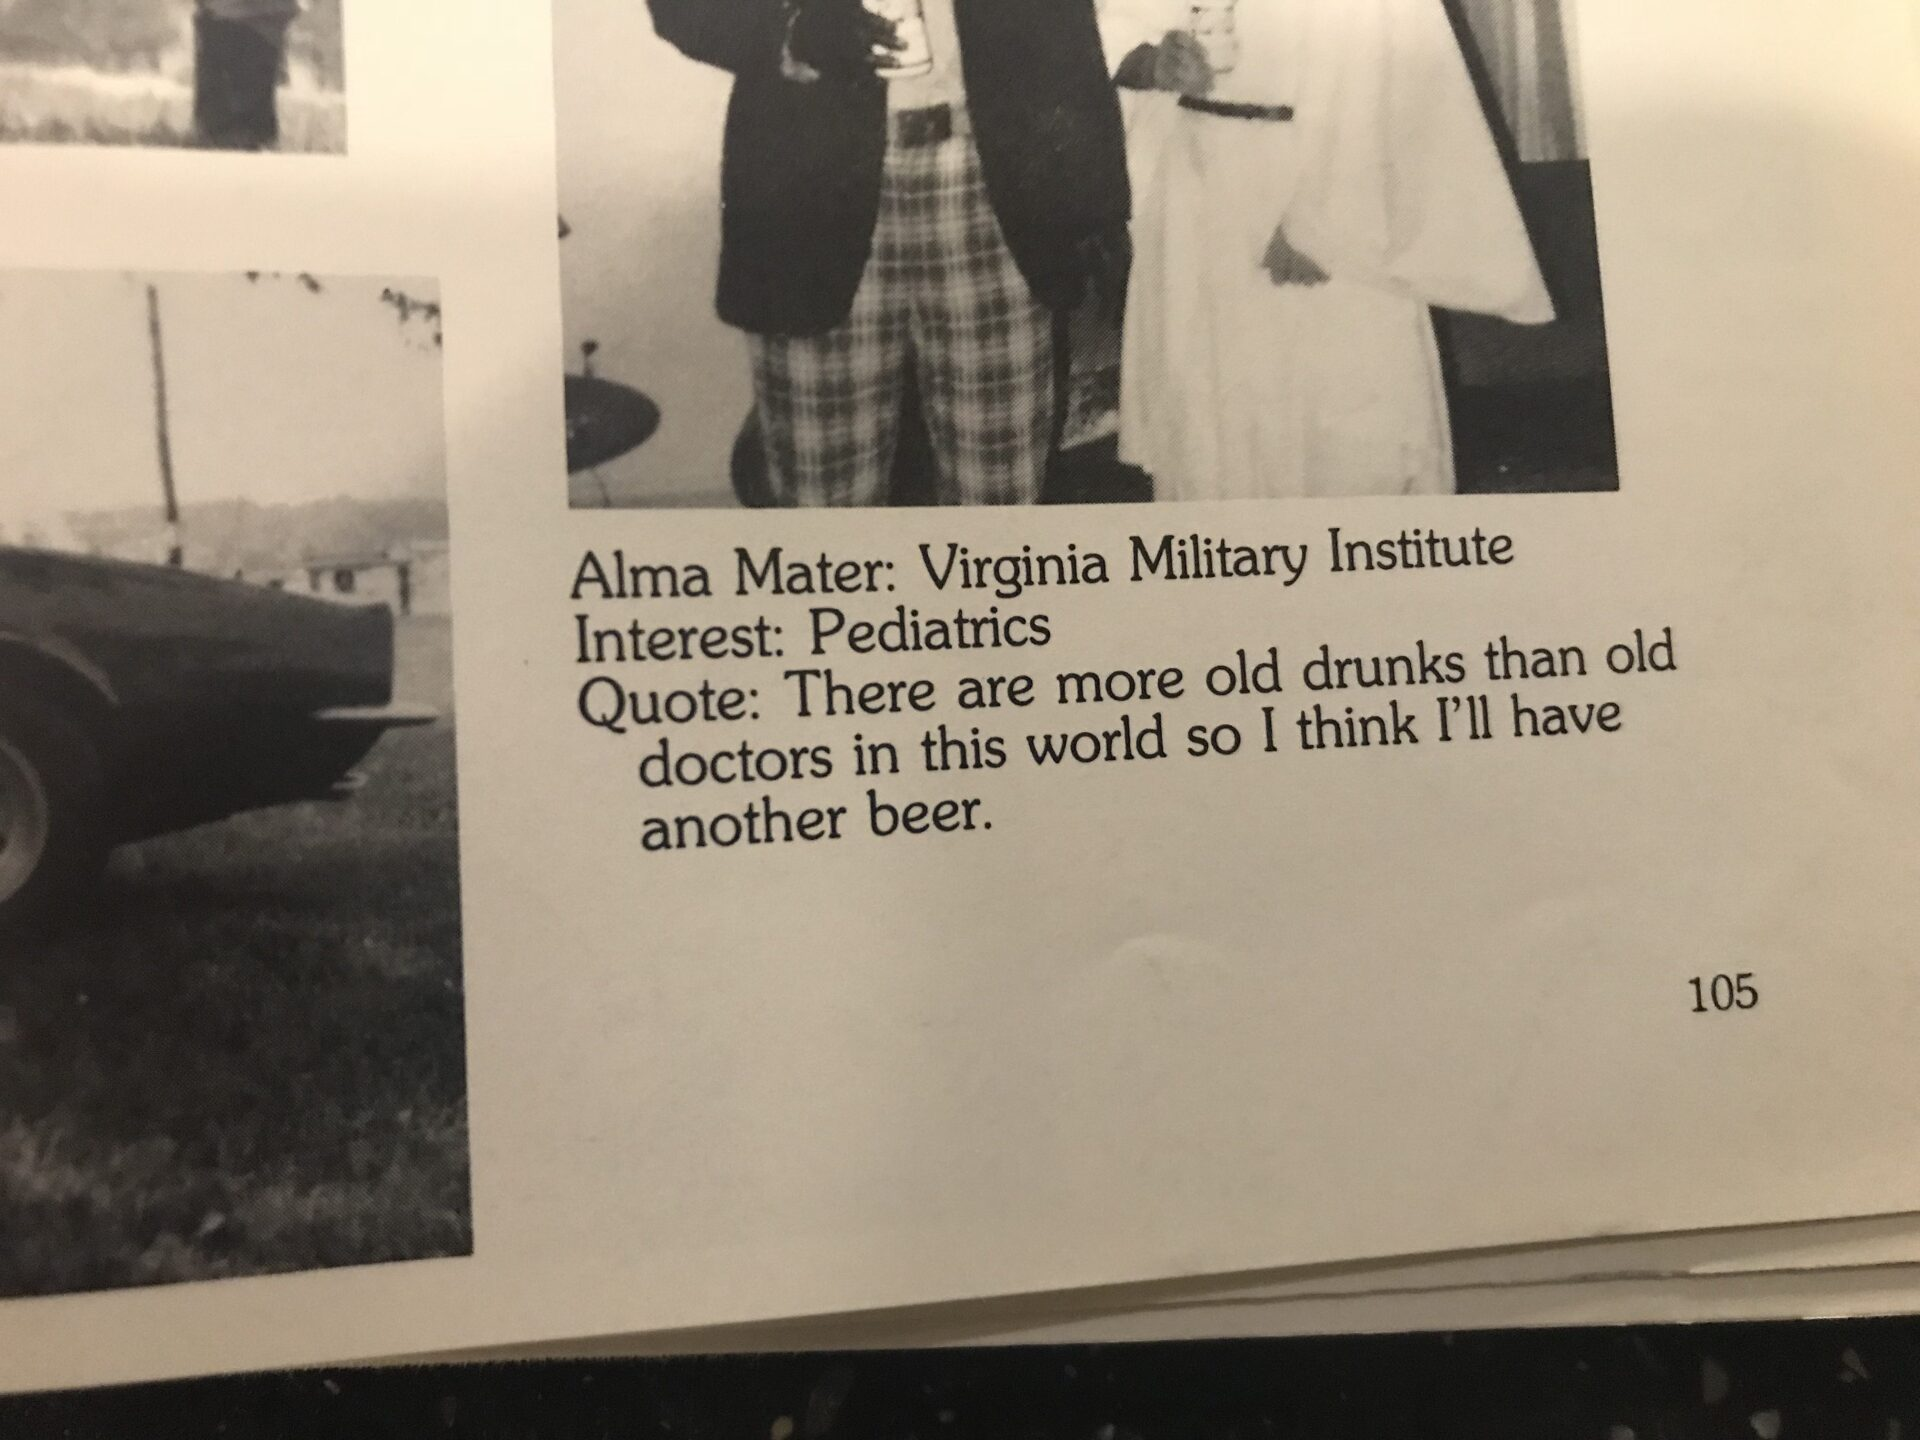 Photos: Gov. Northam 'deeply sorry' for EVMS yearbook photo including blackface, Klan costumes; says he will notresign